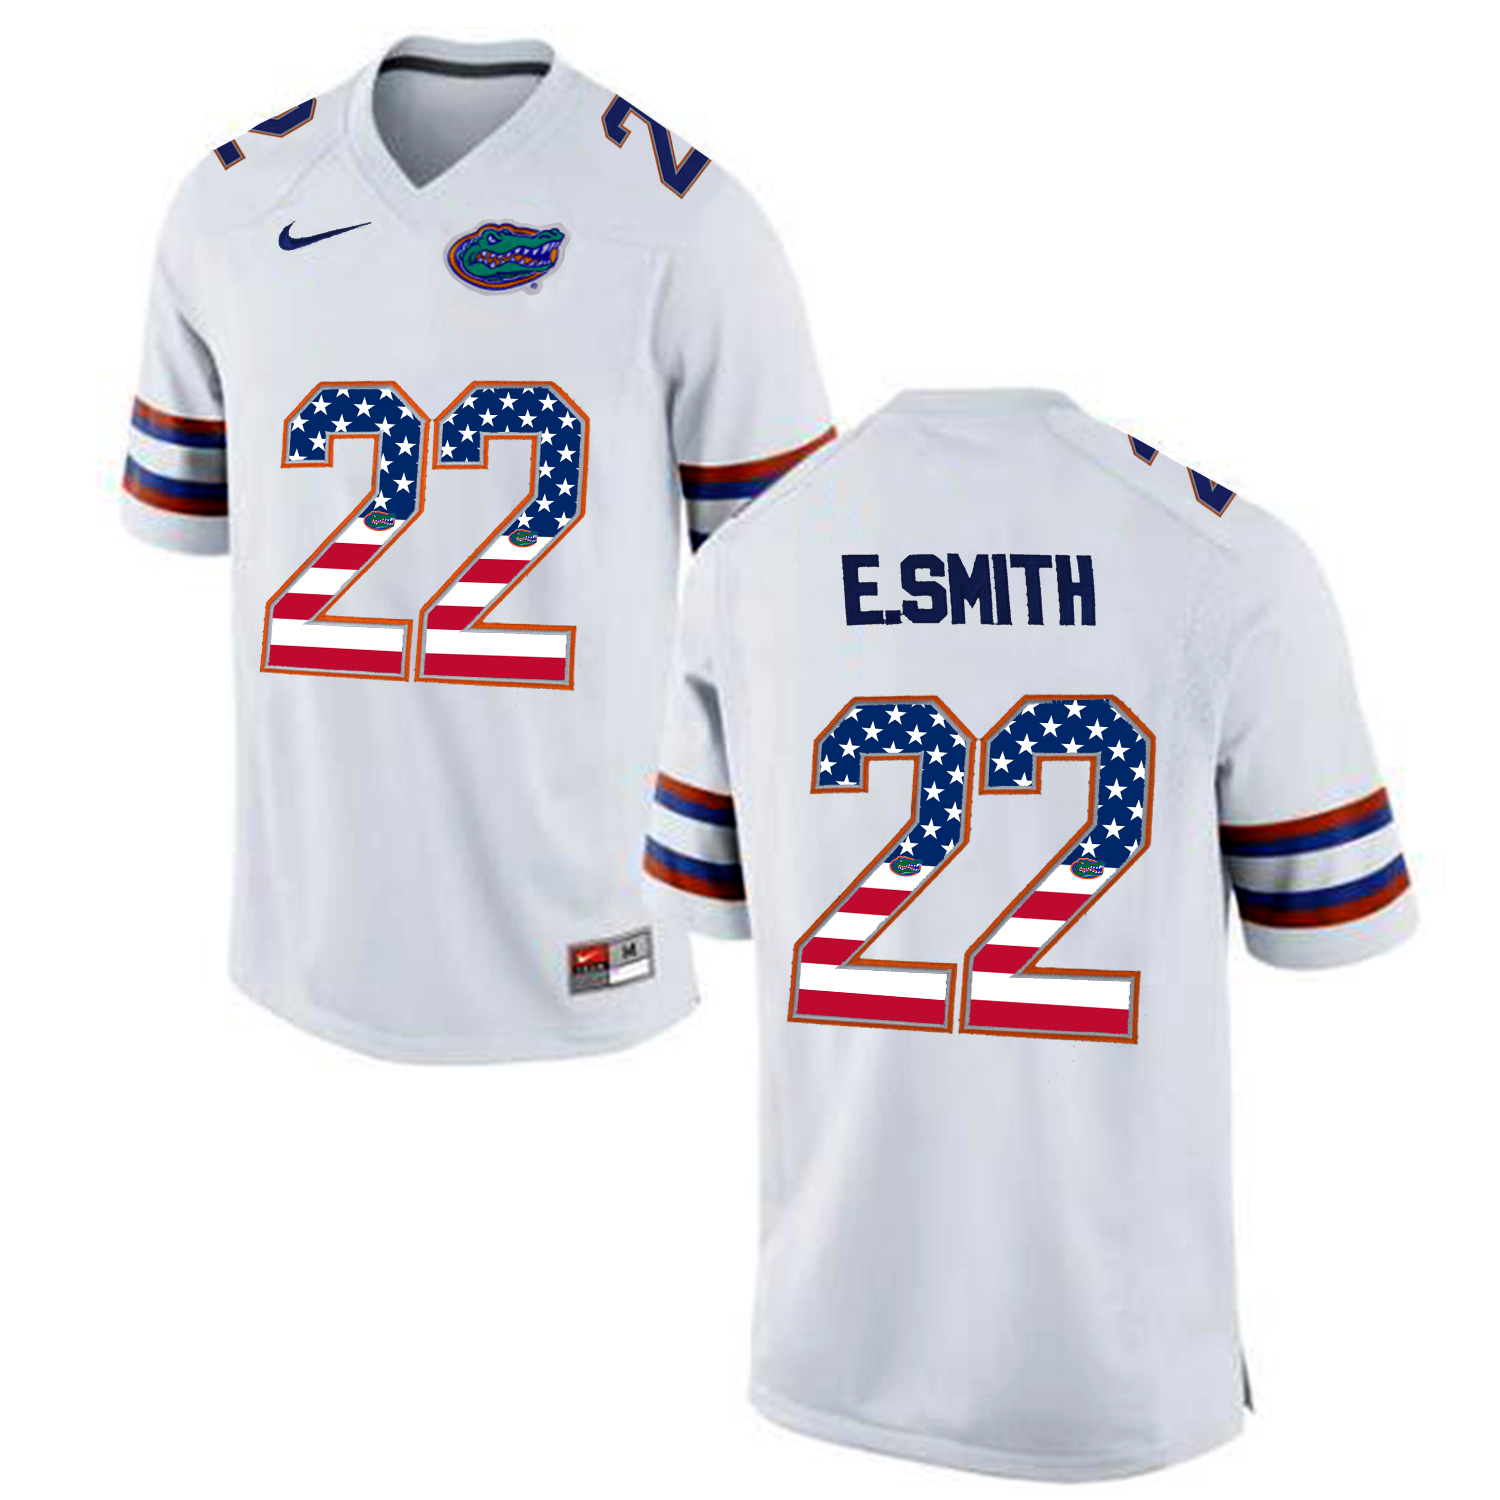 2016 US Flag Fashion Florida Gators E.Smith 22 College Football Jersey White